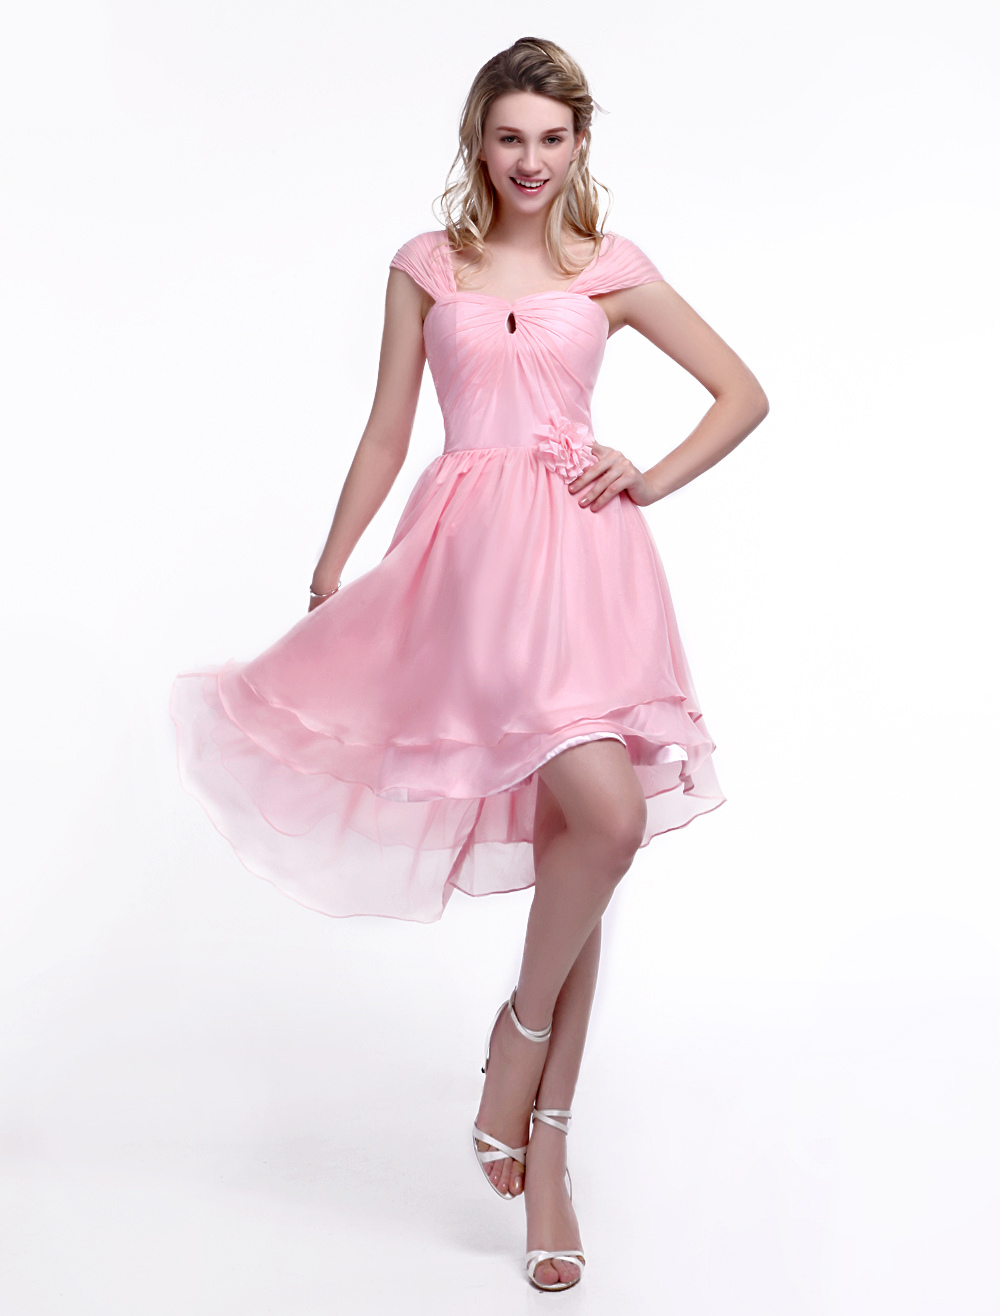 Pink Bridesmaid Dress with Square Neck and Flower Chiffon Skirt Milanoo